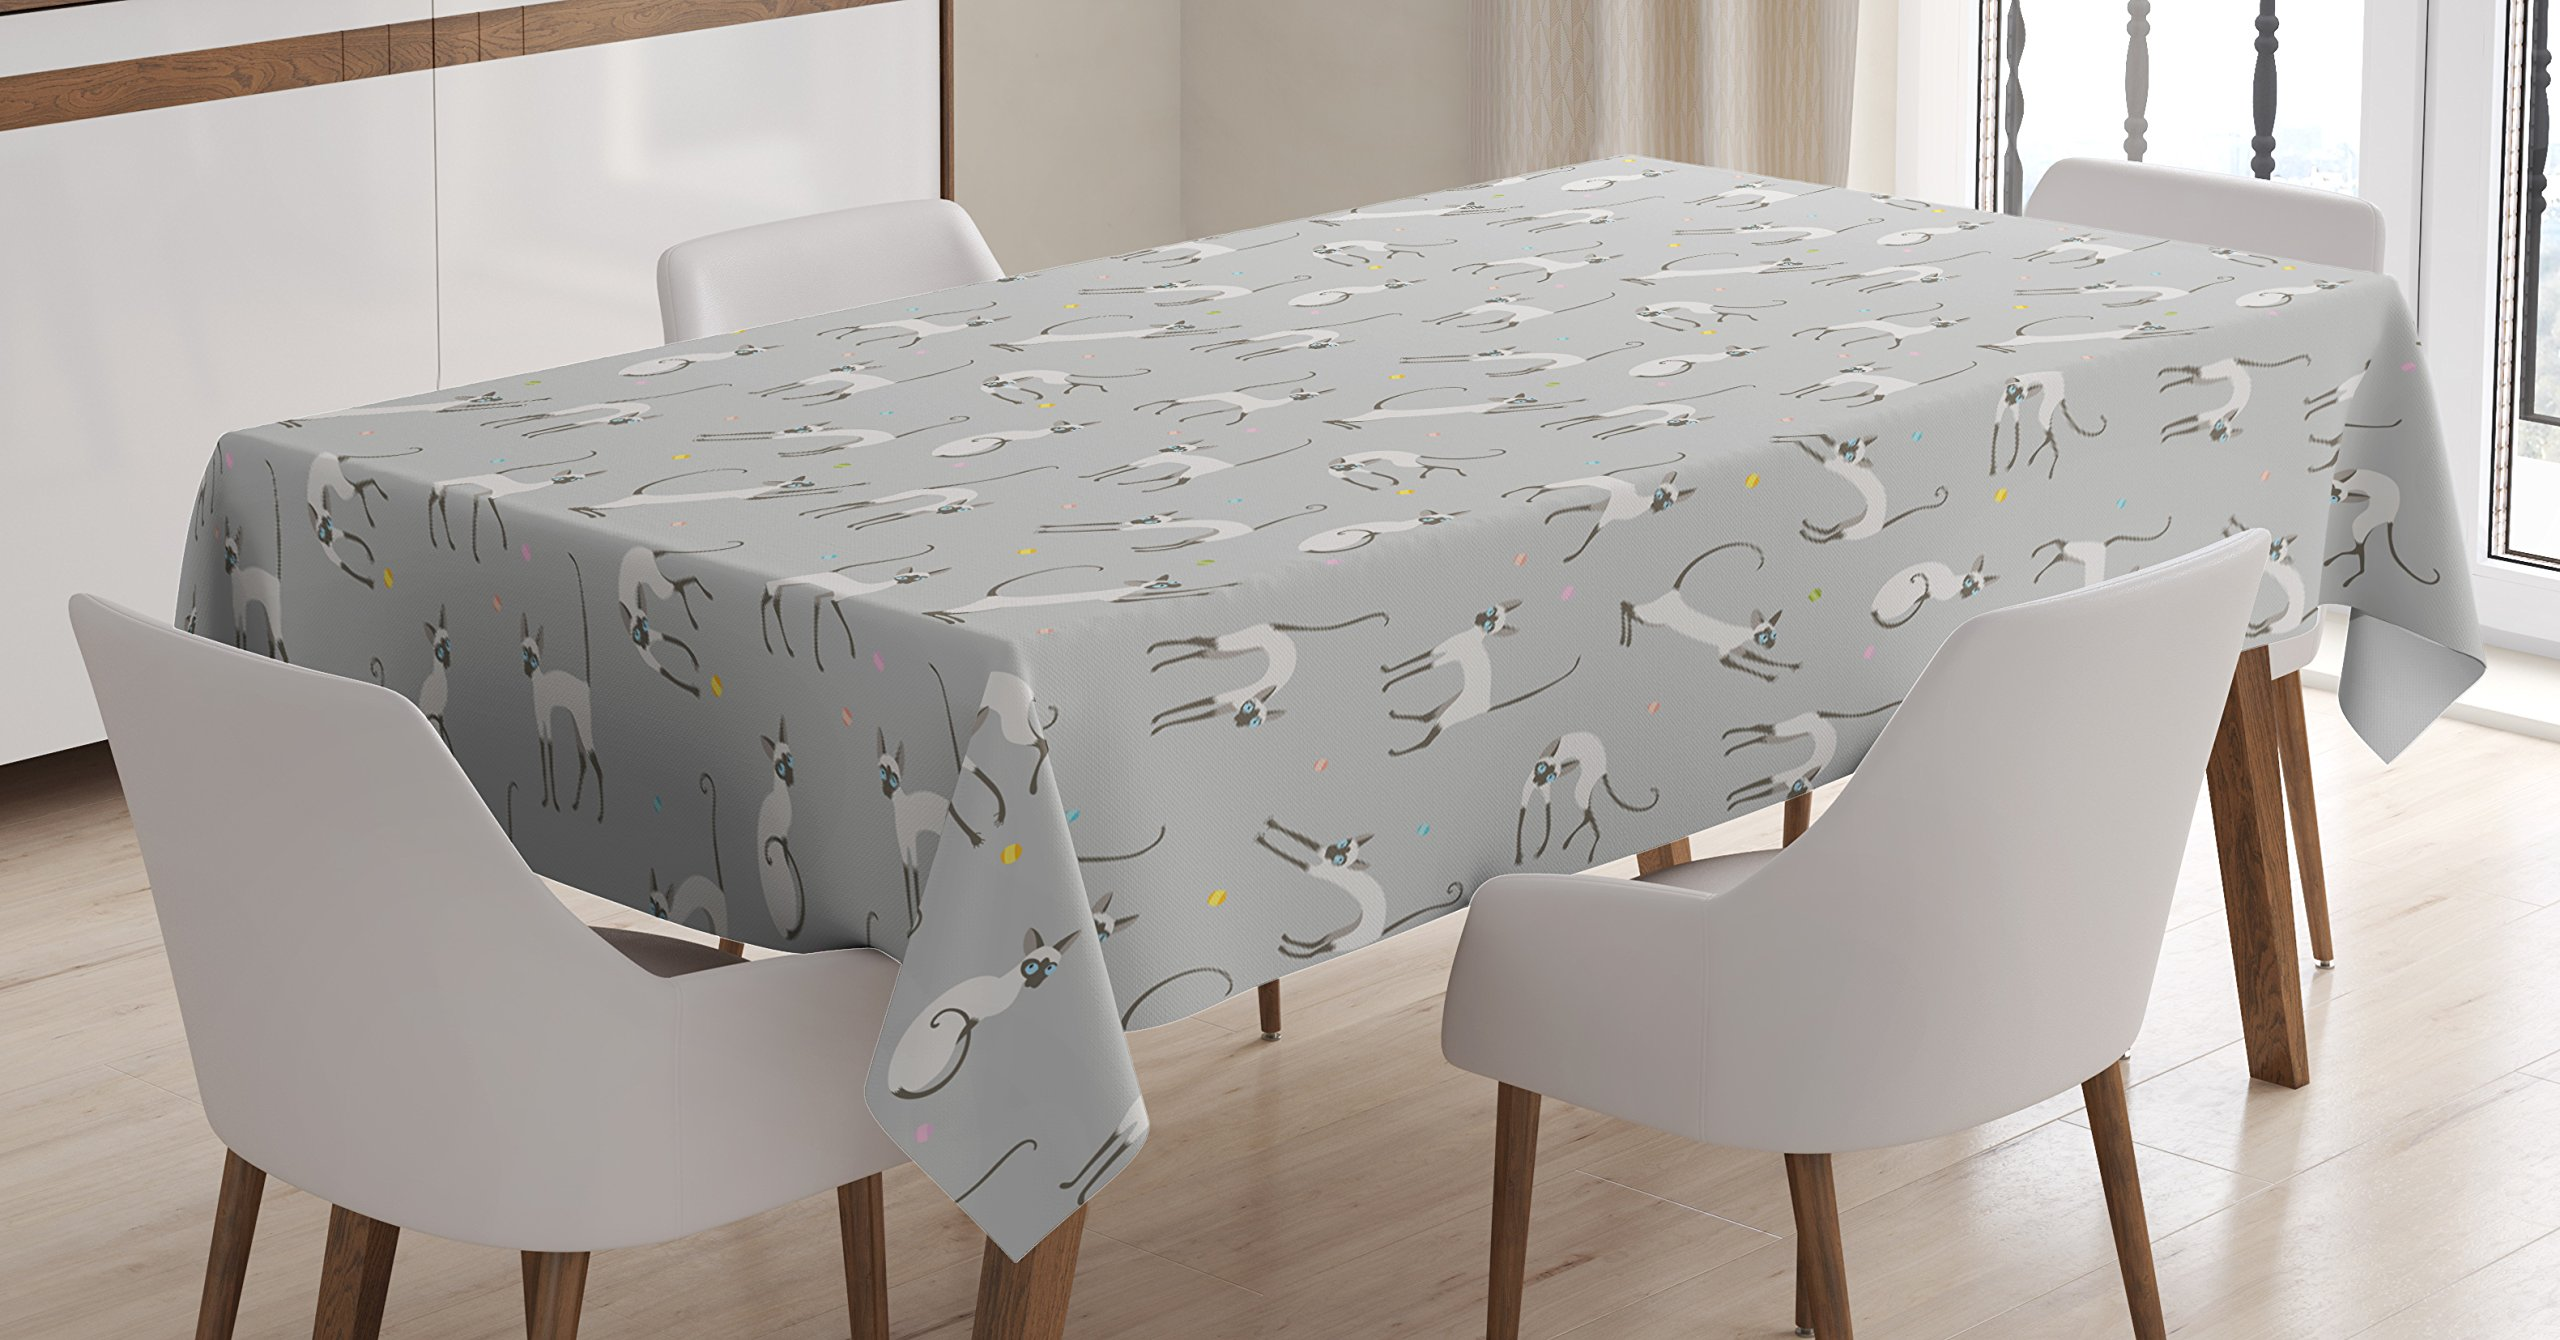 Ambesonne Grey Tablecloth, Cute Siamese Cat on Wall Design Playing and Posing Feline Asian Kitty Animal Design, Dining Room Kitchen Rectangular Table Cover, 60 W X 90 L inches, Pale Grey